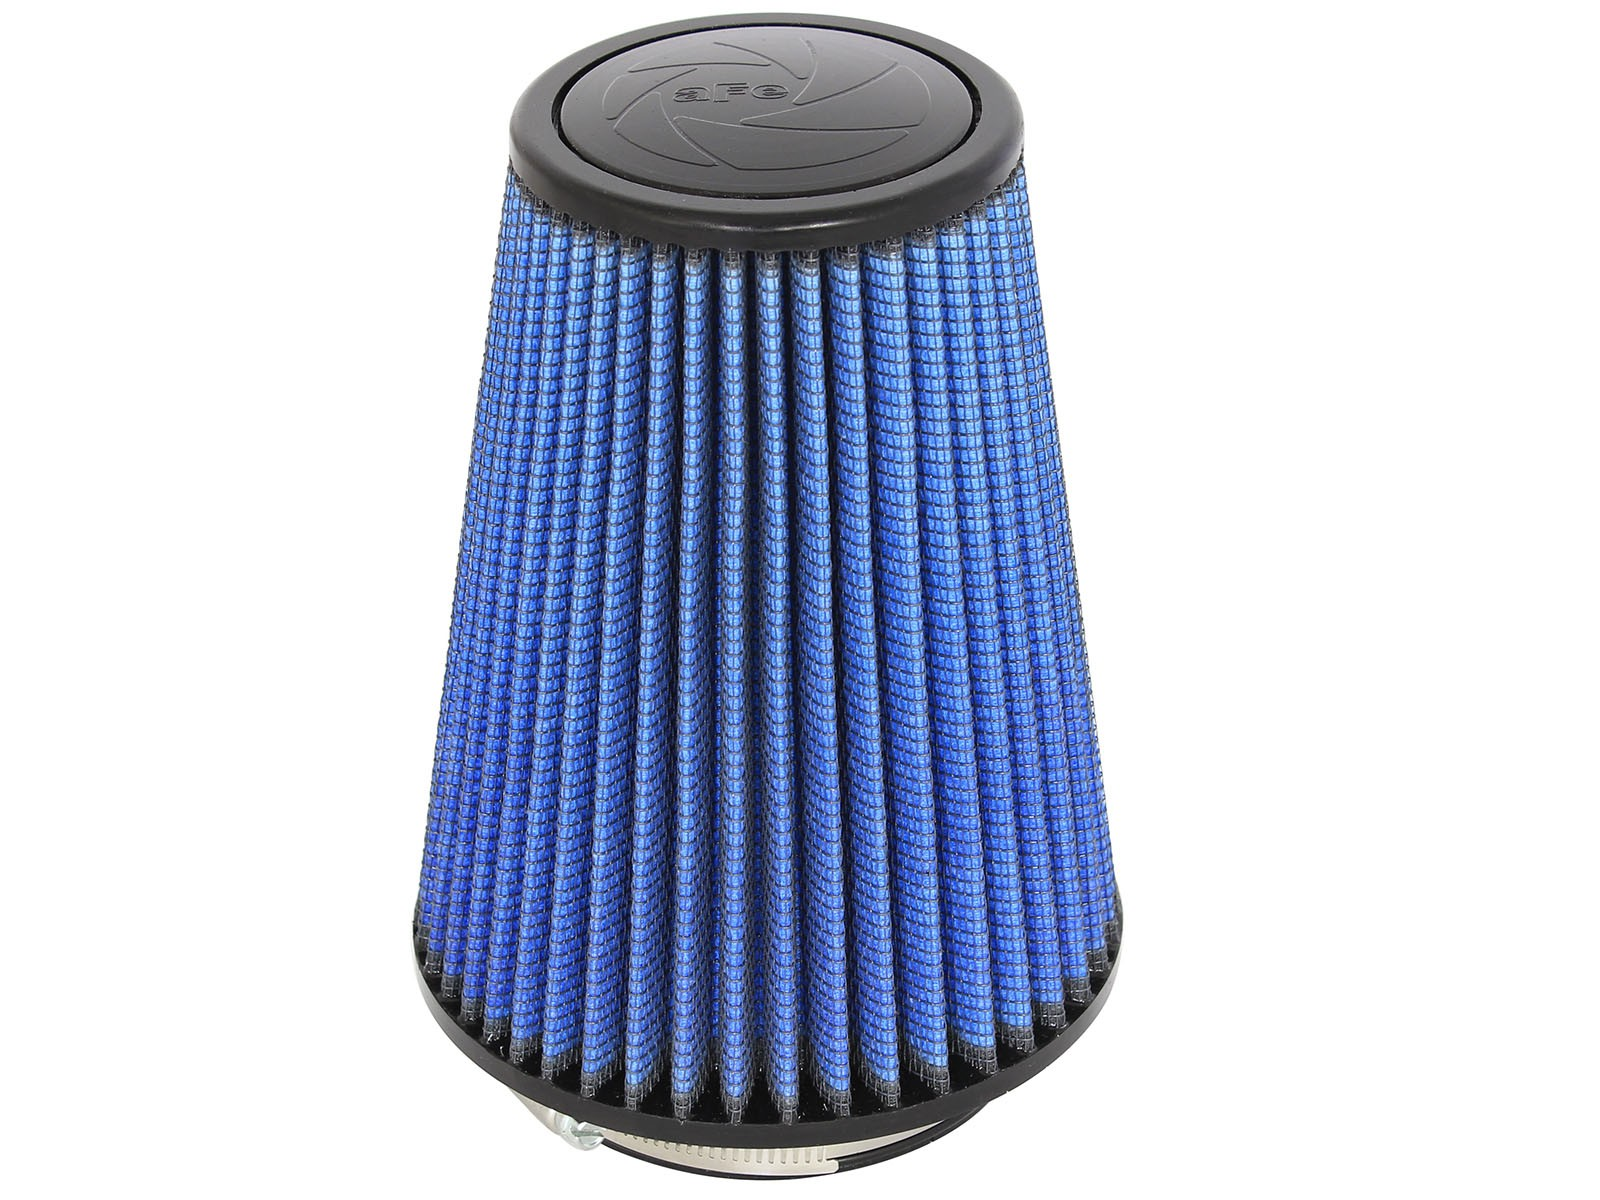 aFe POWER 24-40508 Magnum FLOW Pro 5R Air Filter